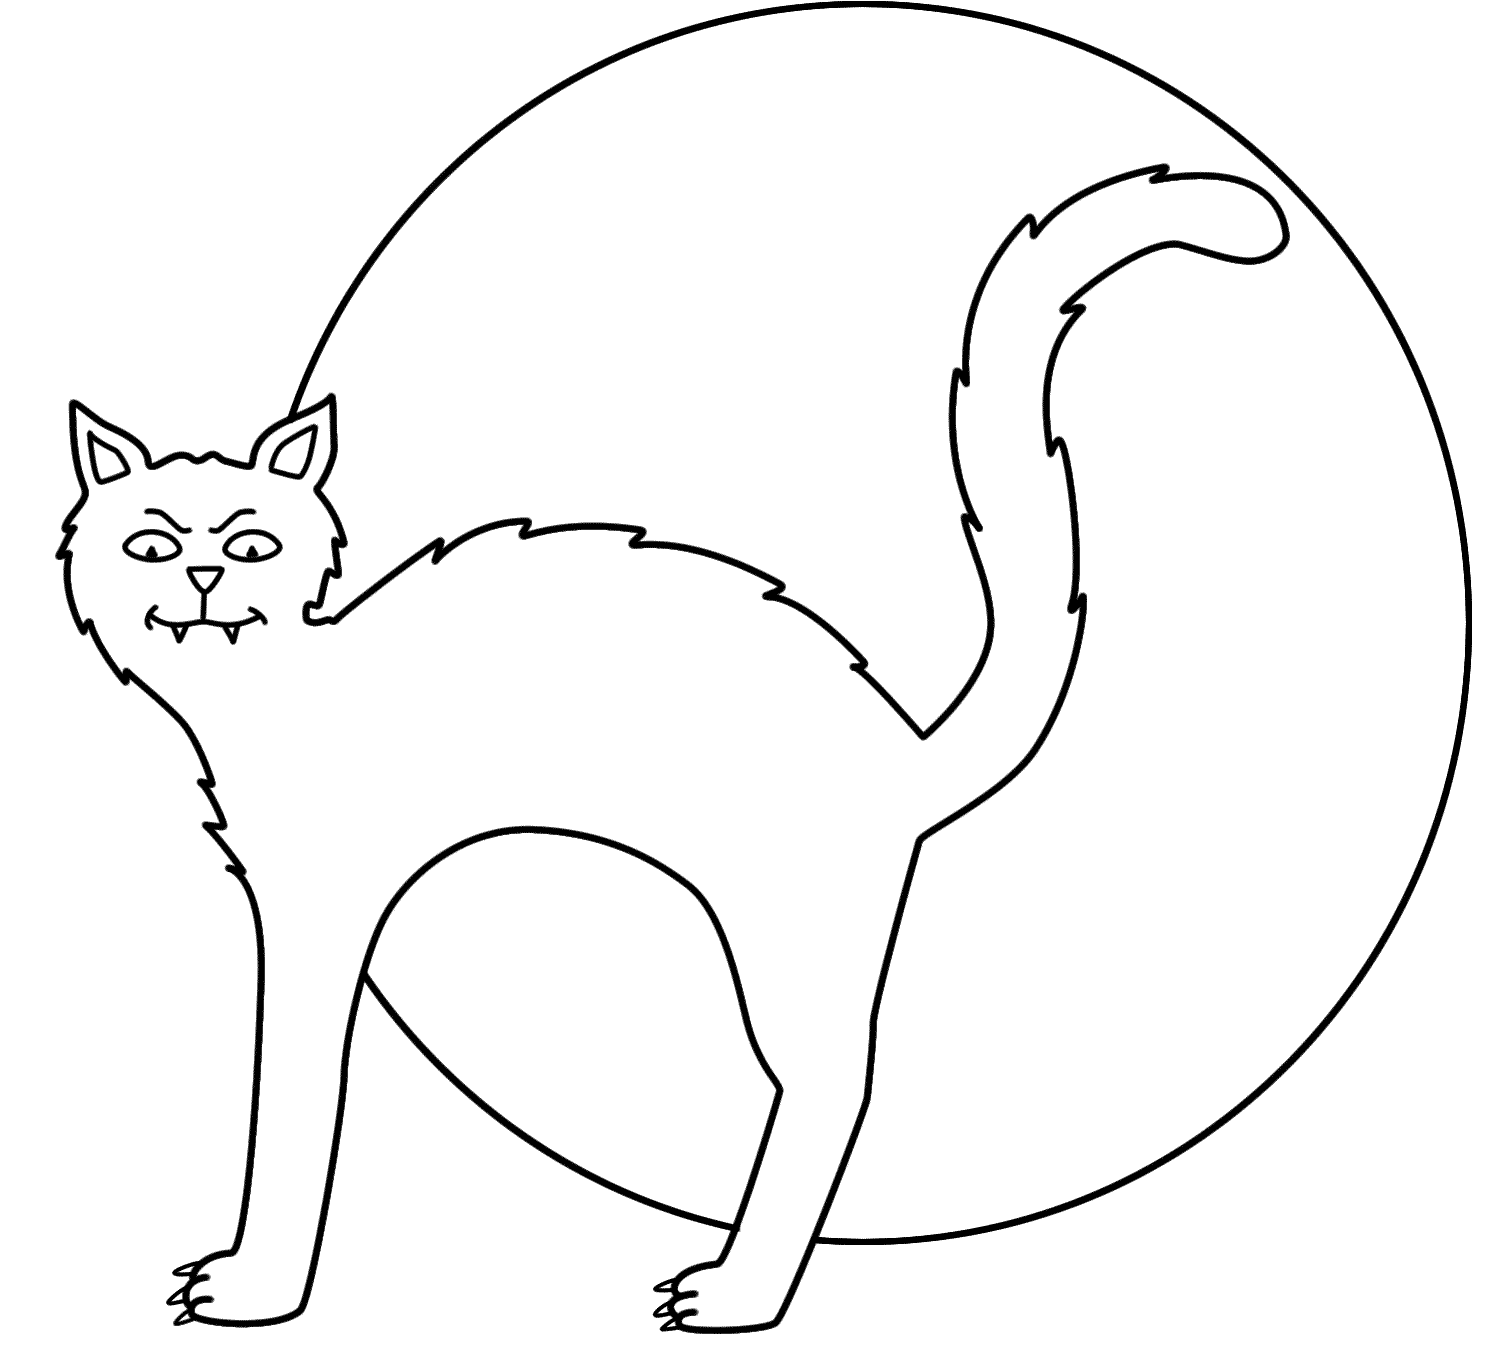 Cat Drawing Black And White at GetDrawings.com | Free for ...